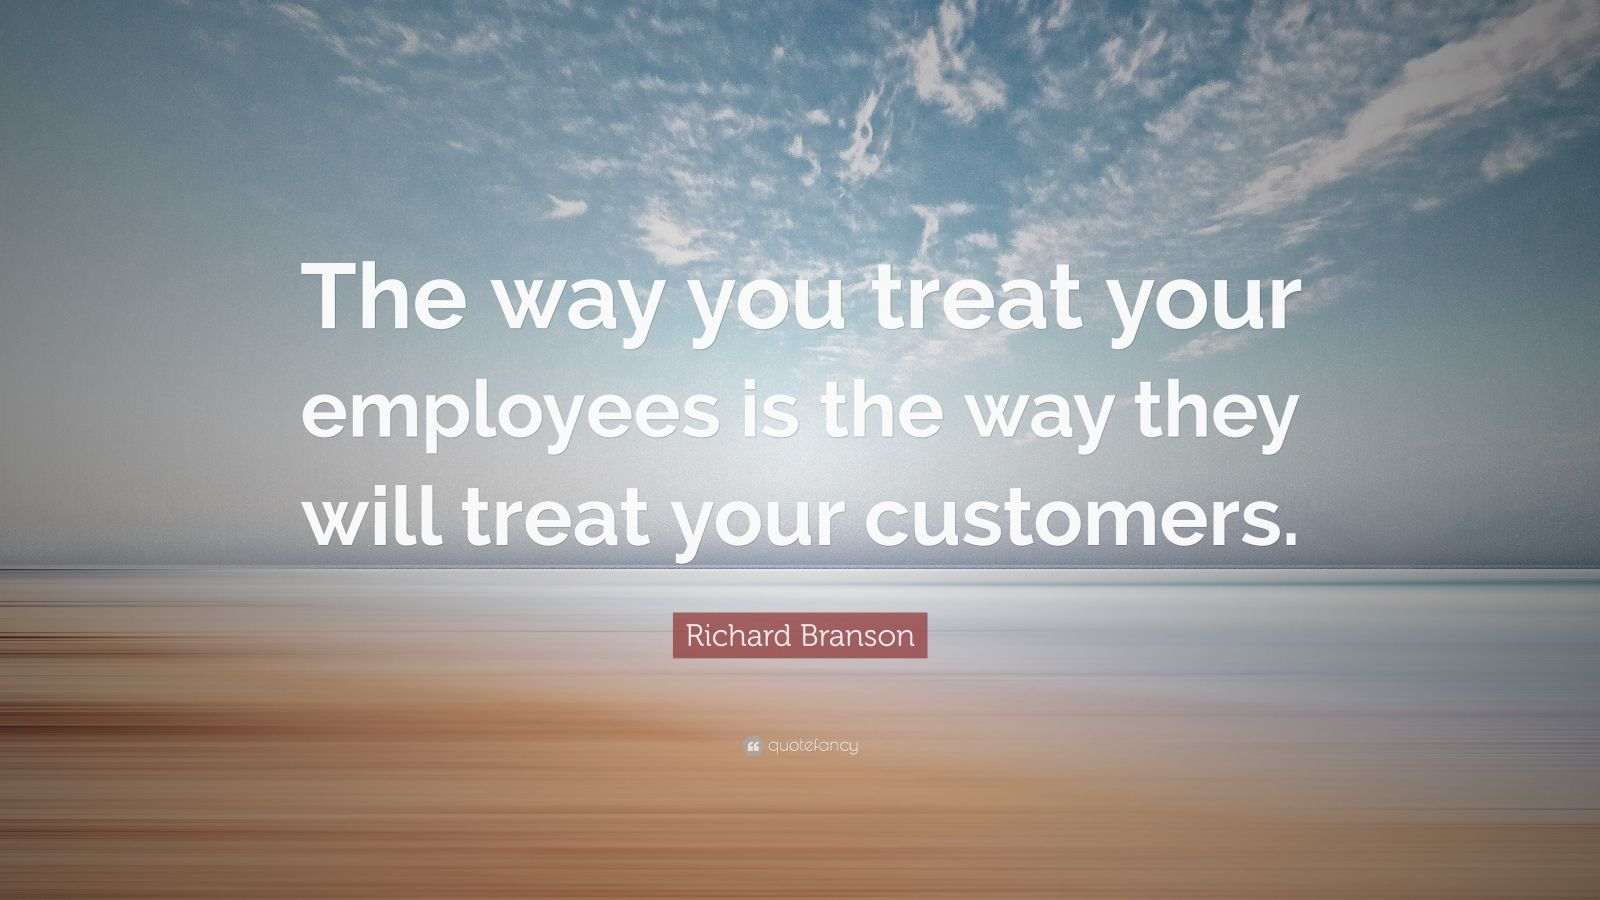 Gary Vaynerchuk Quotes Wallpaper Richard Branson Quote The Way You Treat Your Employees